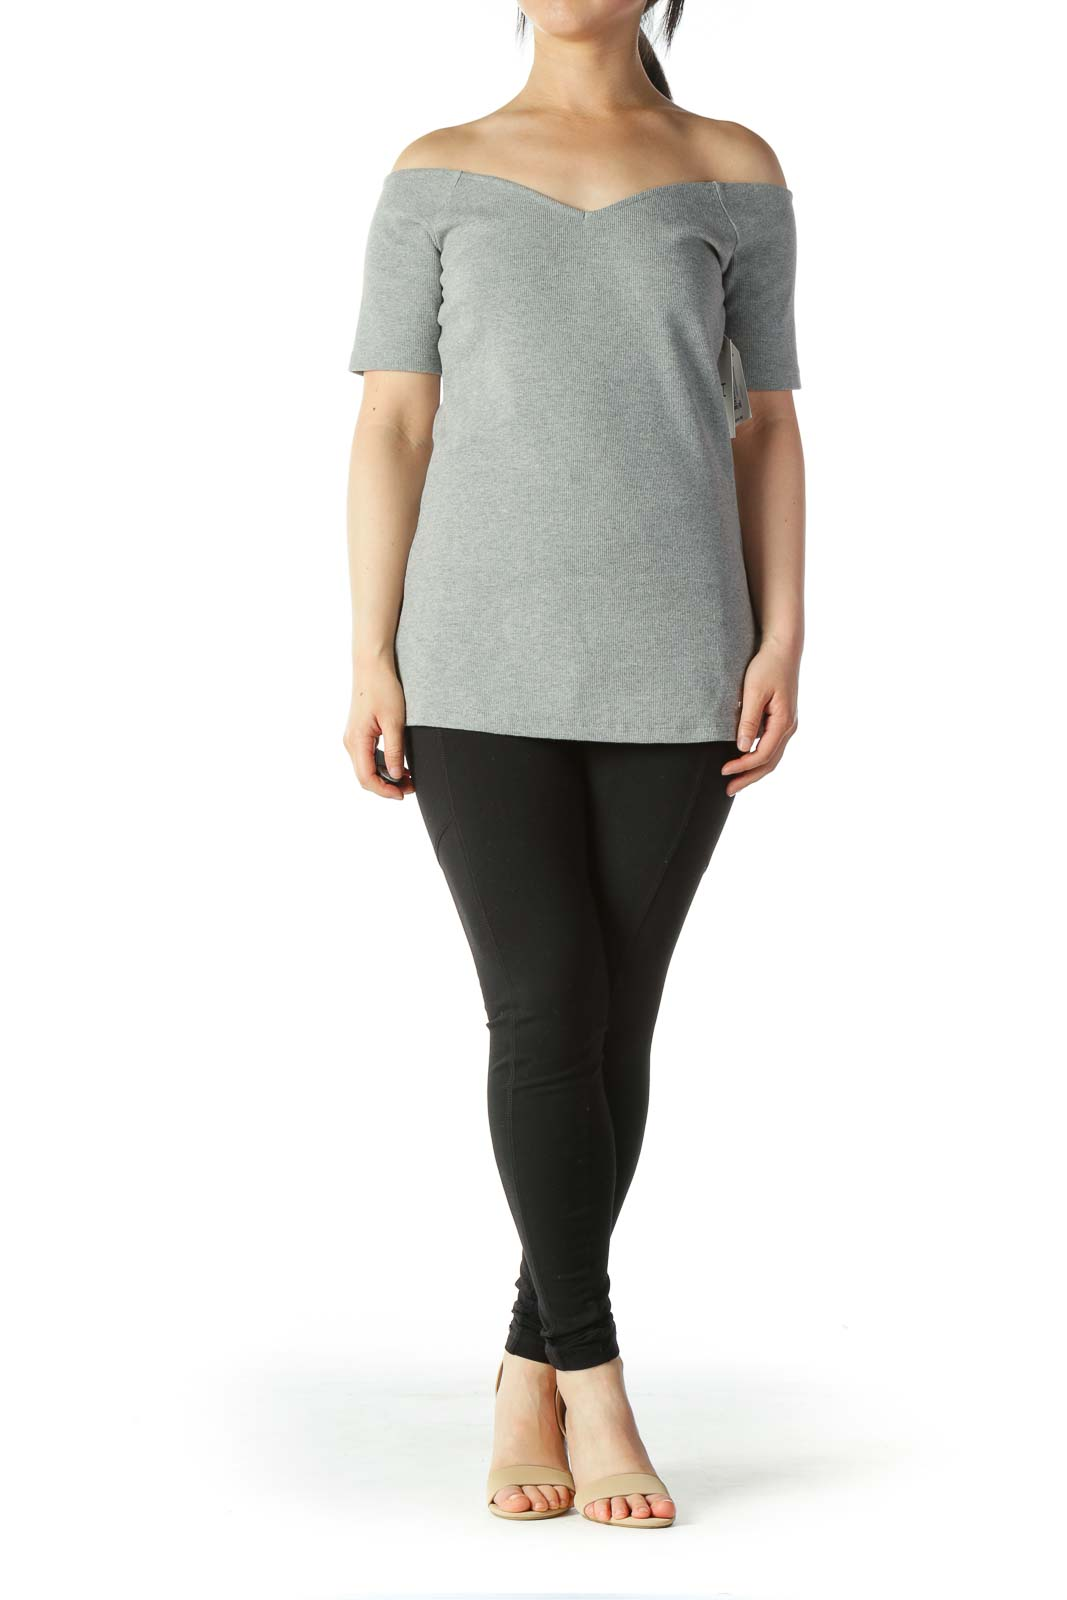 Gray V-Neck Cold Shoulders Stretch Top